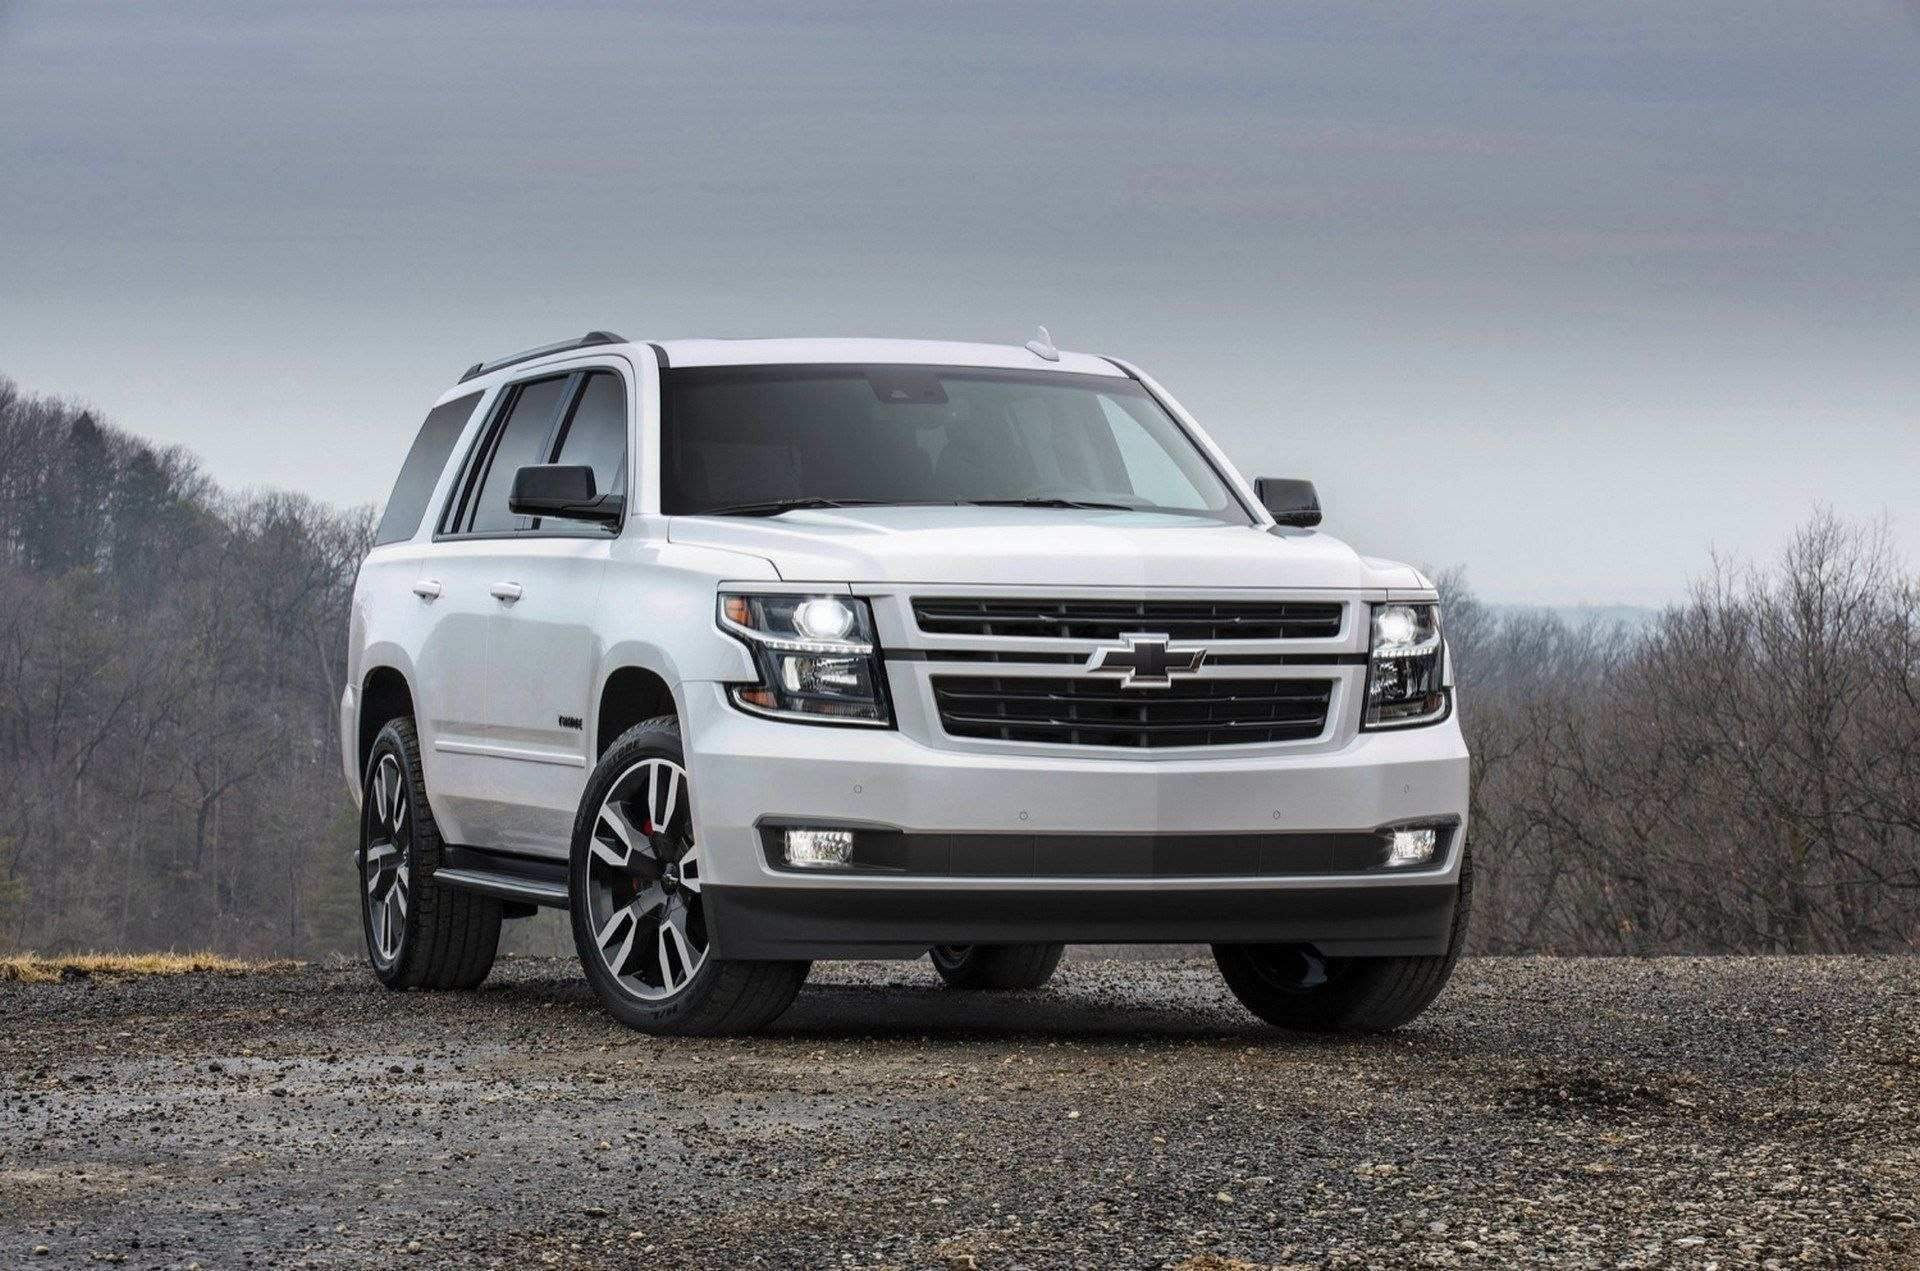 89 The Best 2020 Chevy Tahoe Ltz Photos